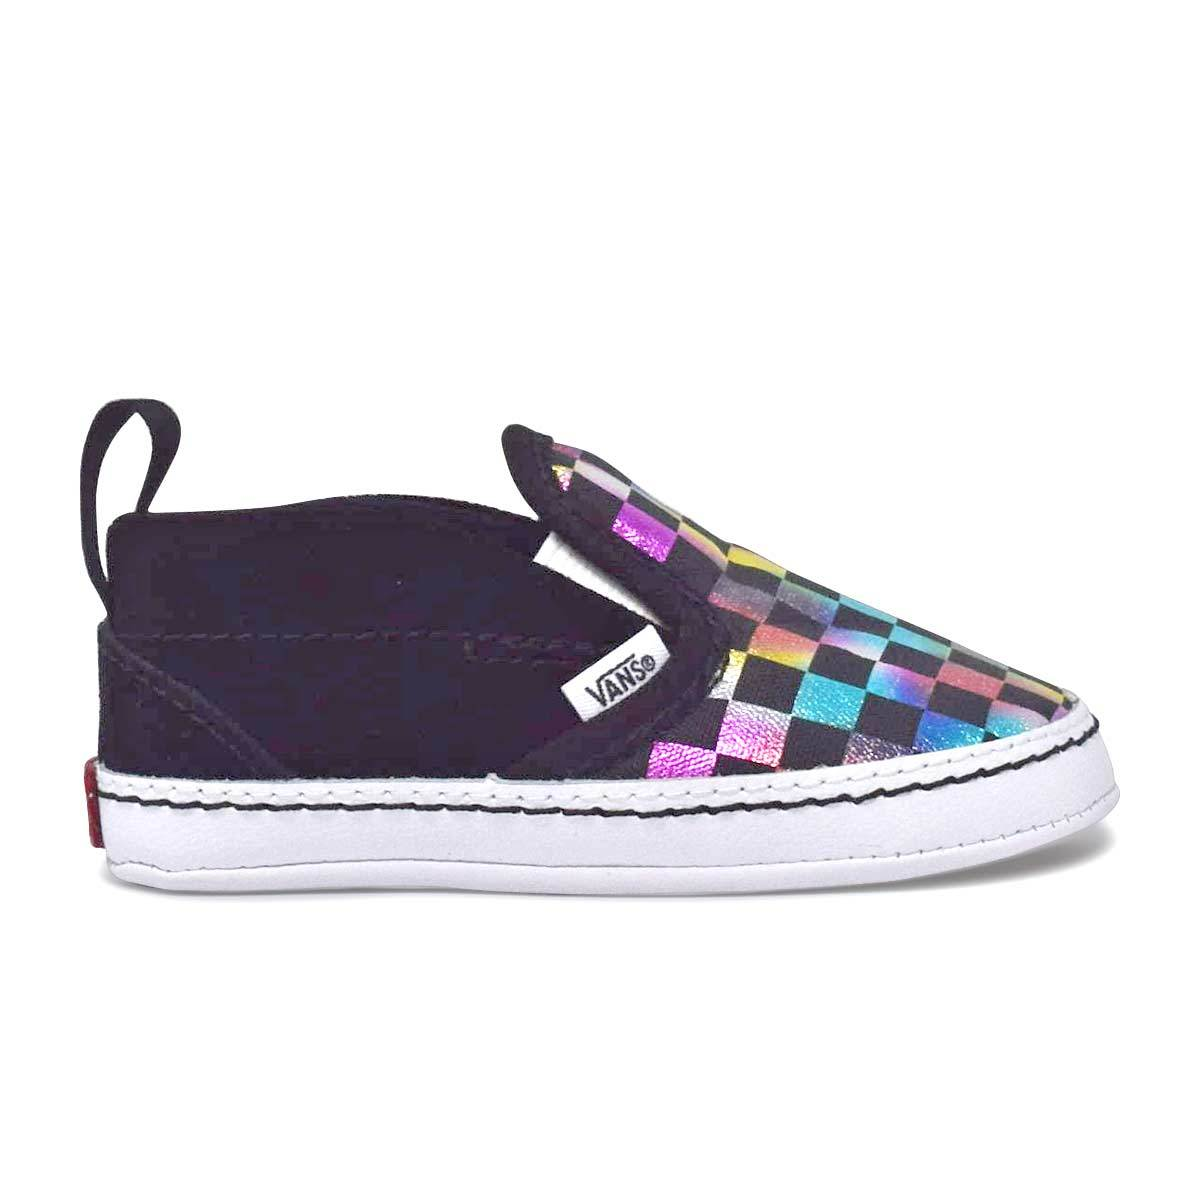 Infant Checker Slip-On V Crib Shoes (0-1 year) Iridescent Checkerboard